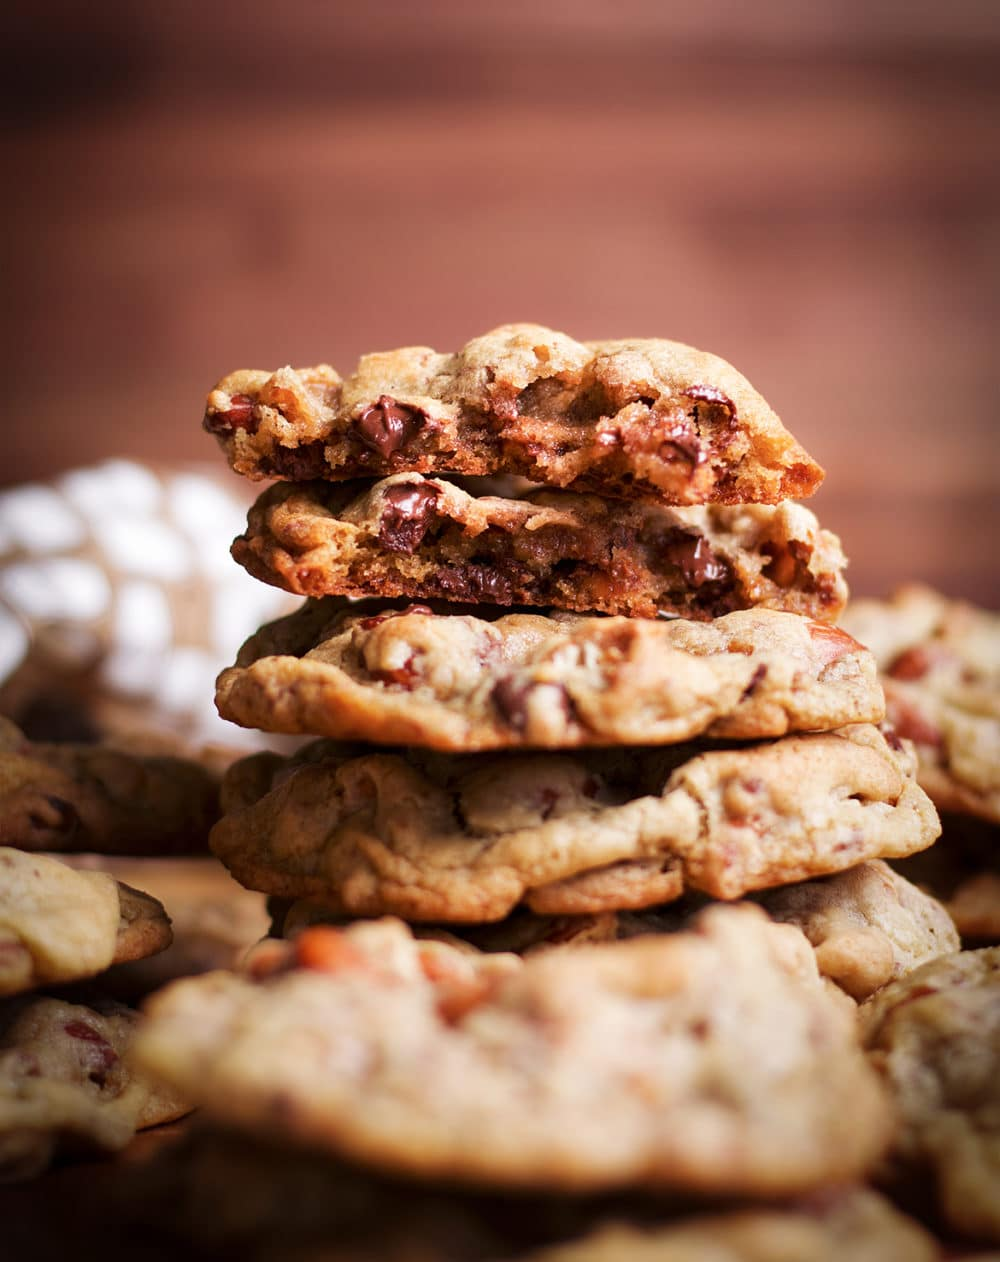 A stack of Anything Cookies with one cookie on the top broken in half to see inside.